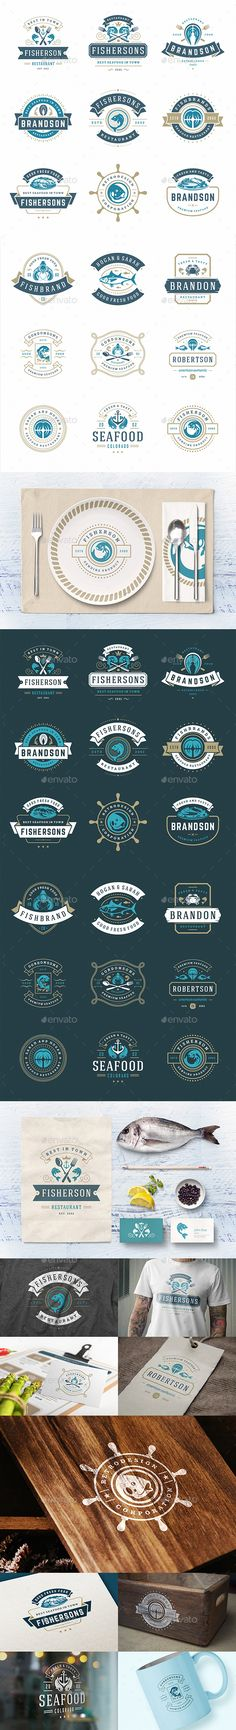 18 Seafood Logos & Badges - Badges & Stickers Web Elements